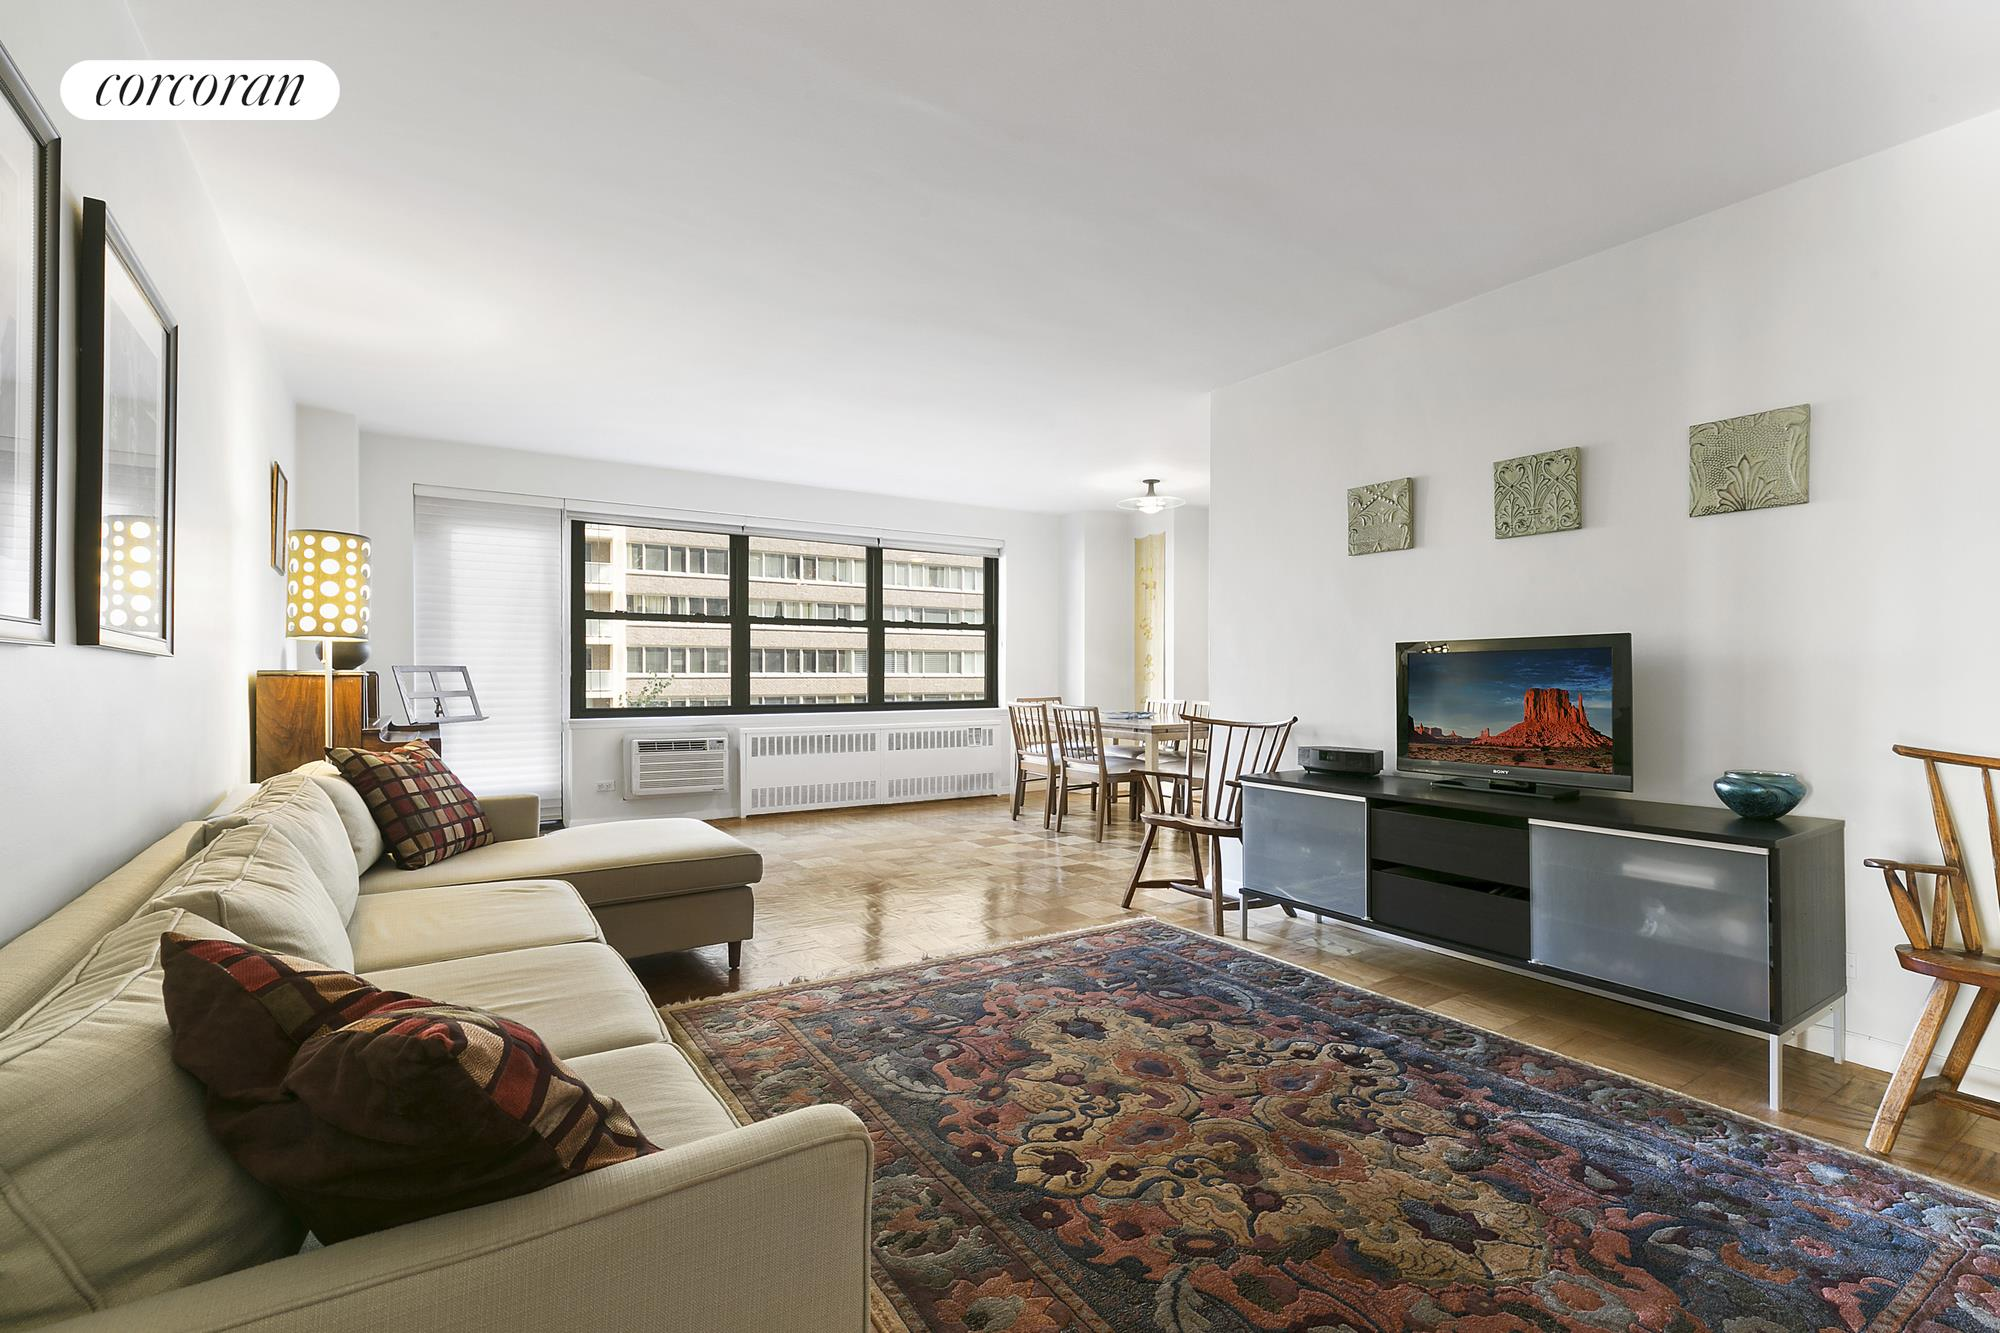 Corcoran, 205 West End Avenue, Apt. 5D, Upper West Side Real Estate ...